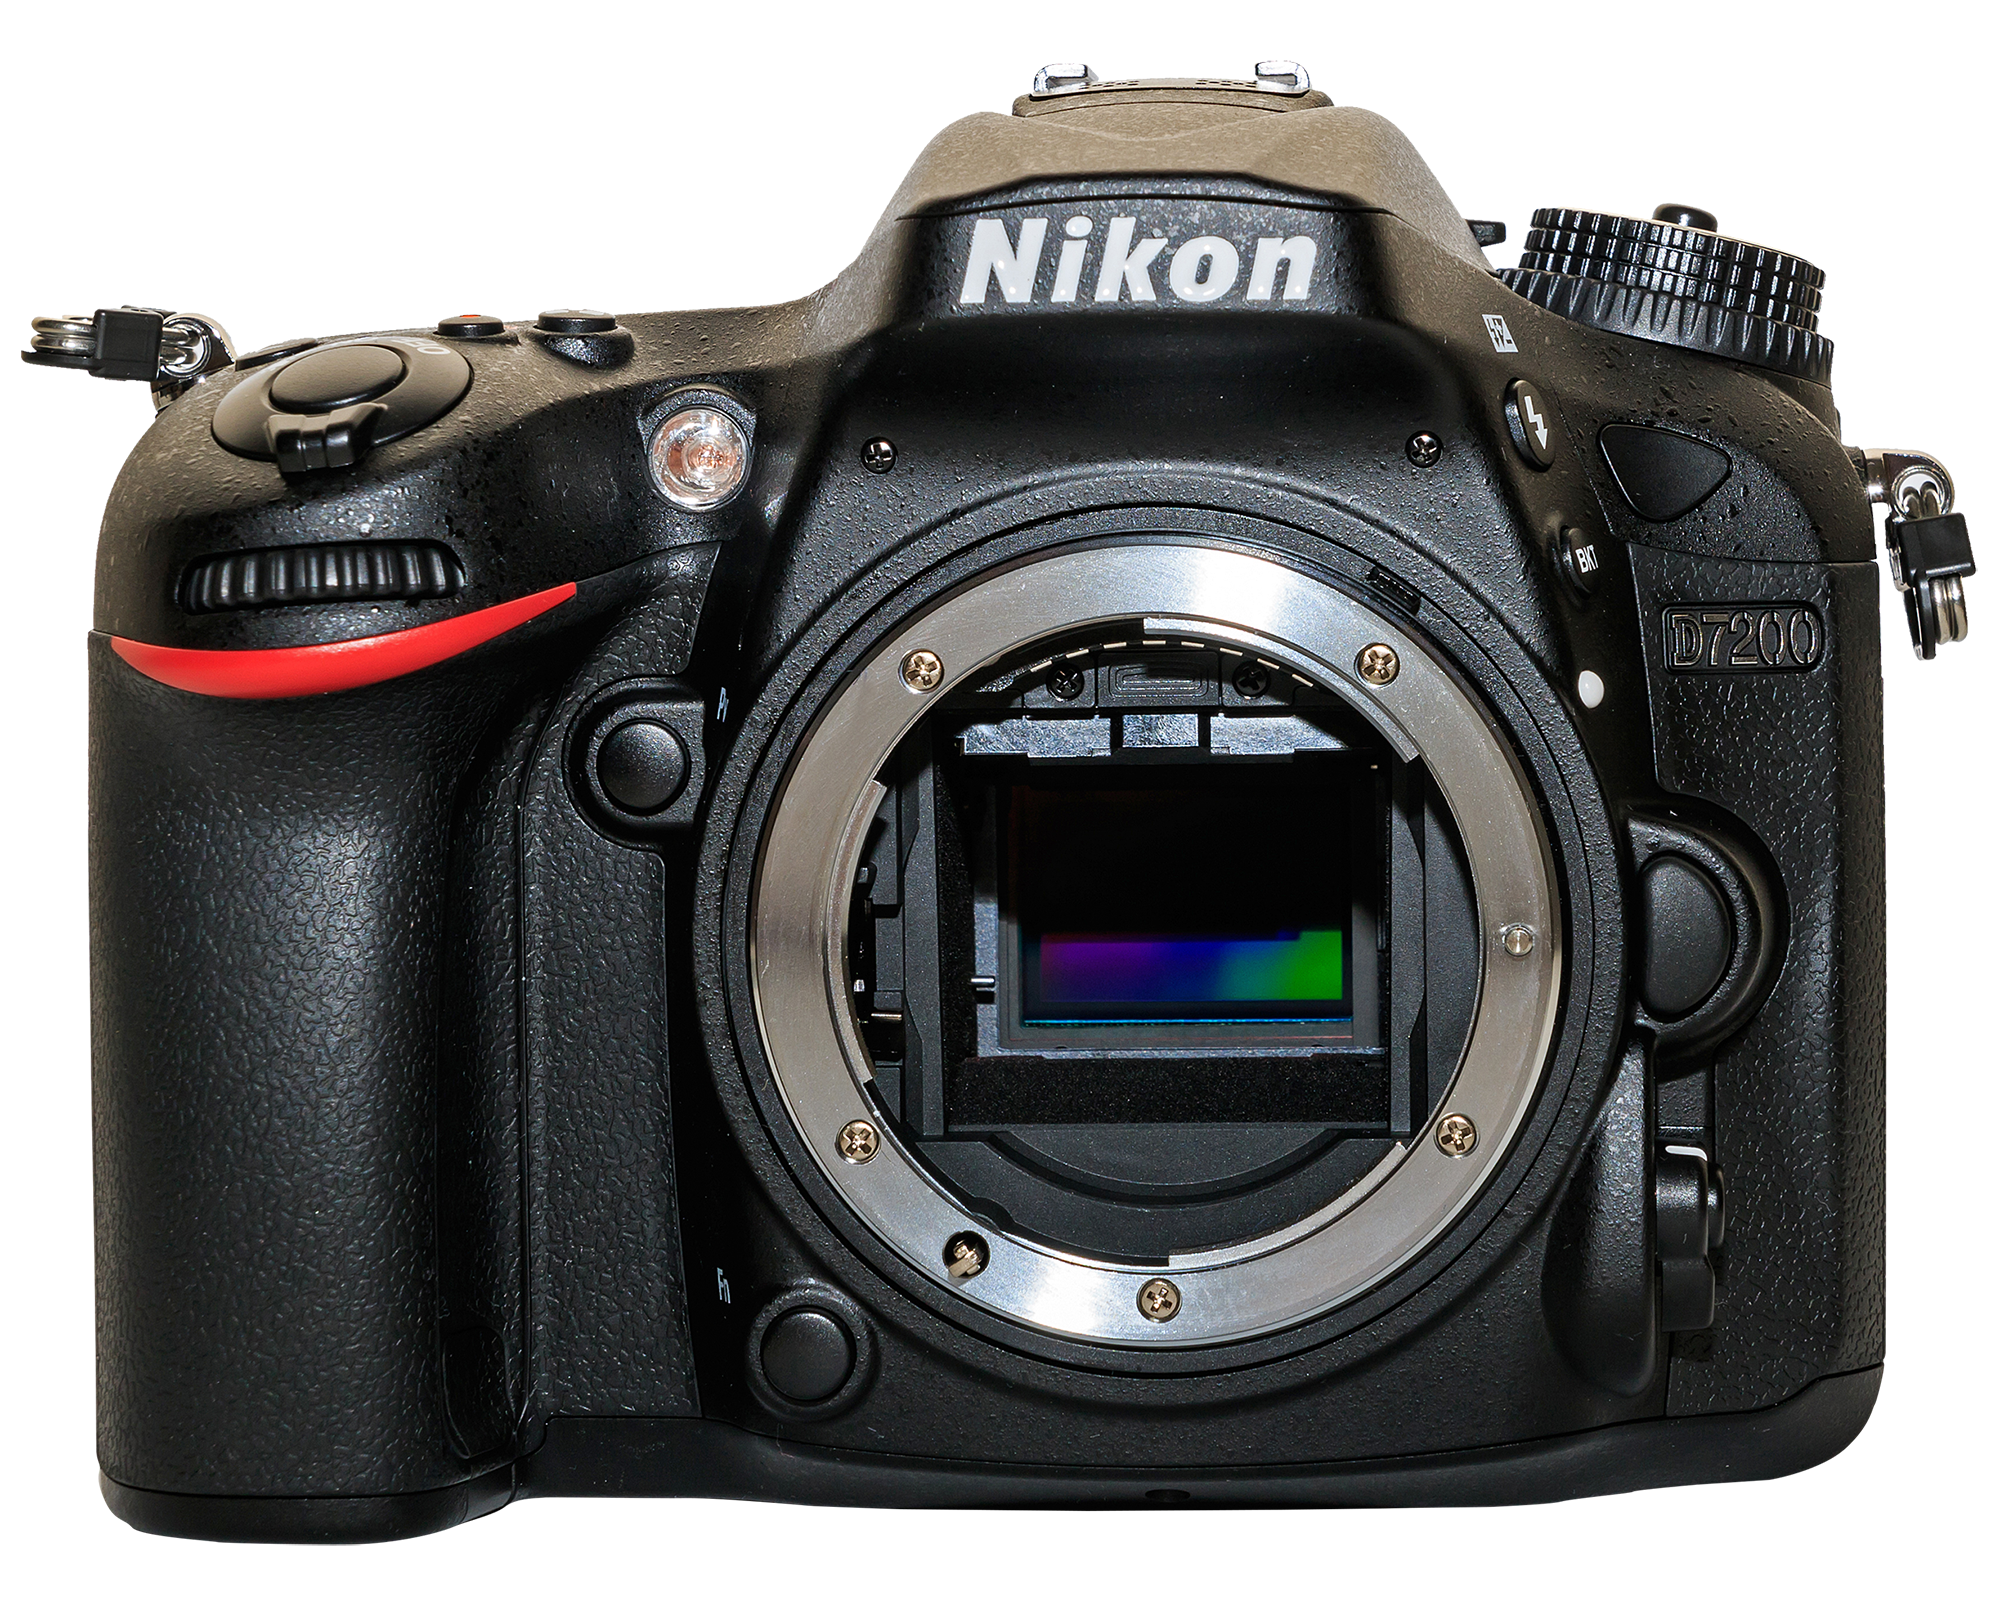 Png files with transparent background. File nikon d body